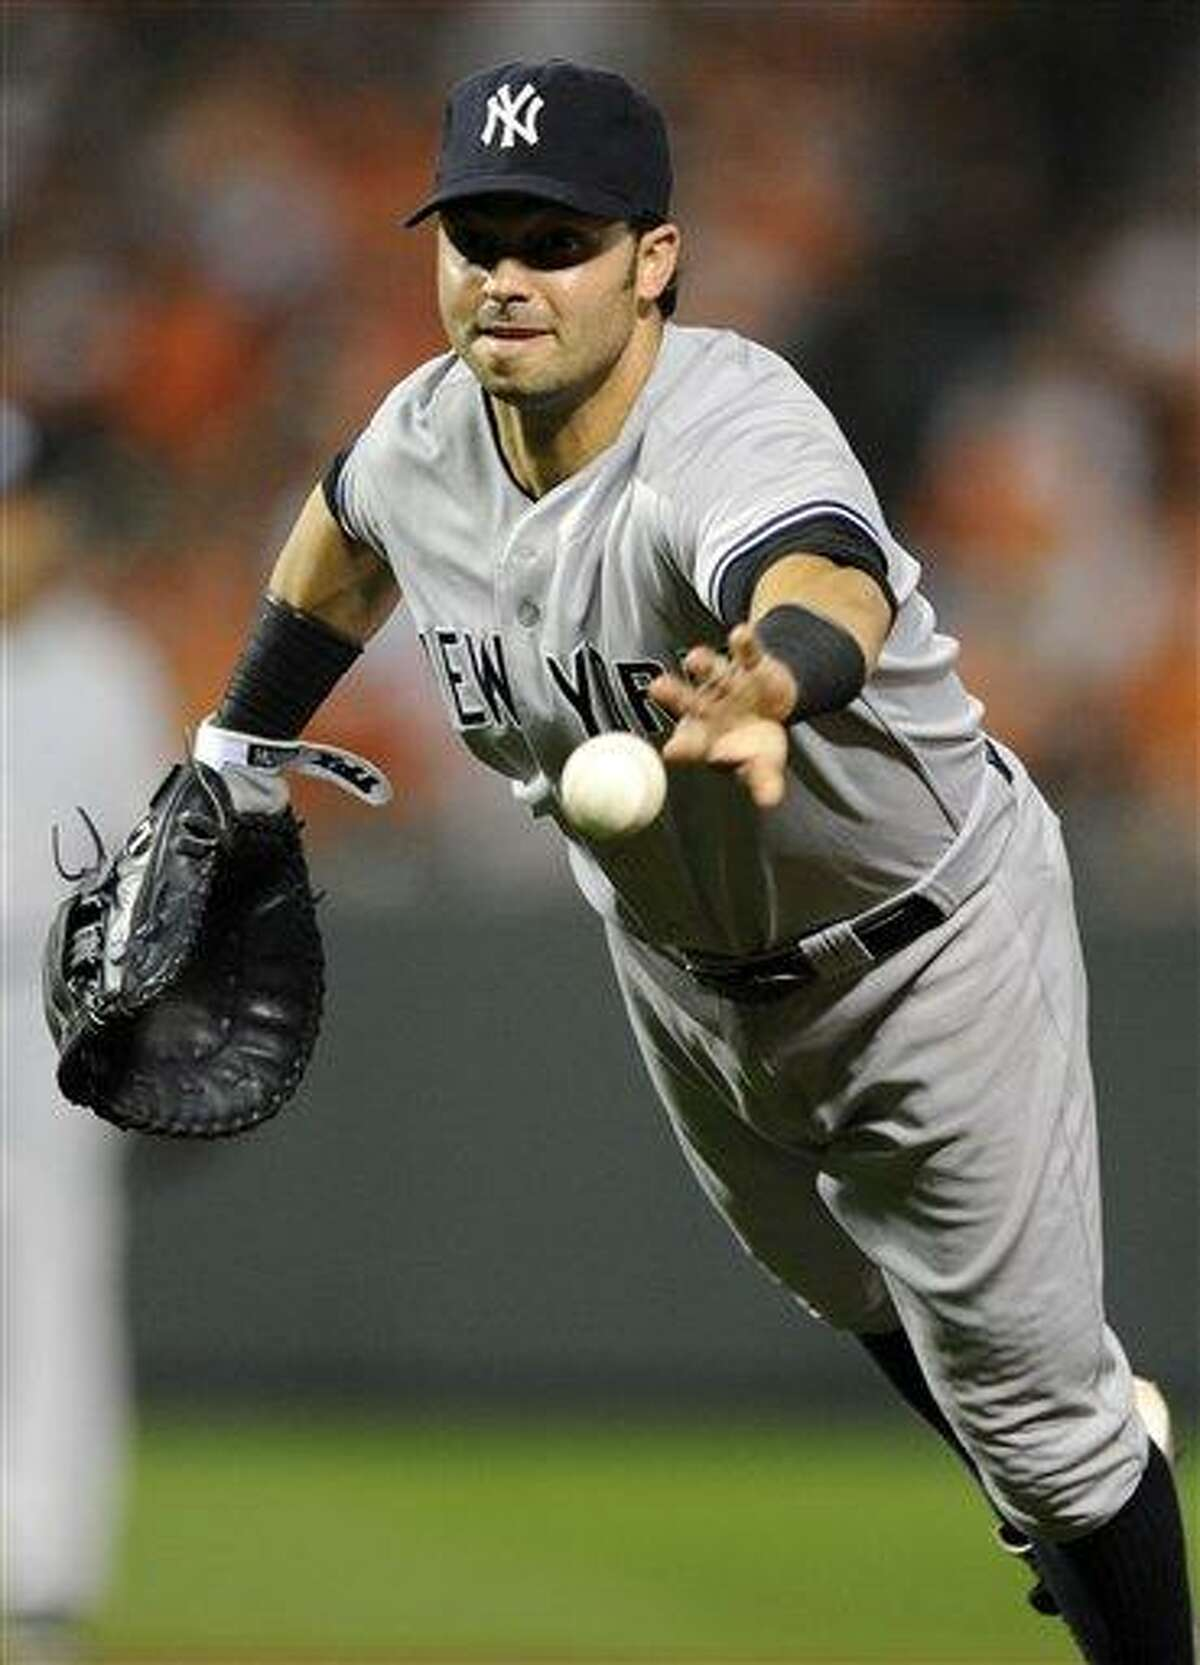 New York Yankees first baseman Nick Swisher makes a throw to first to put out Baltimore Orioles' Nick Markakis during the eighth inning of a baseball game, Thursday, Sept. 6, 2012, in Baltimore. The Orioles won 10-6. (AP Photo/Nick Wass)